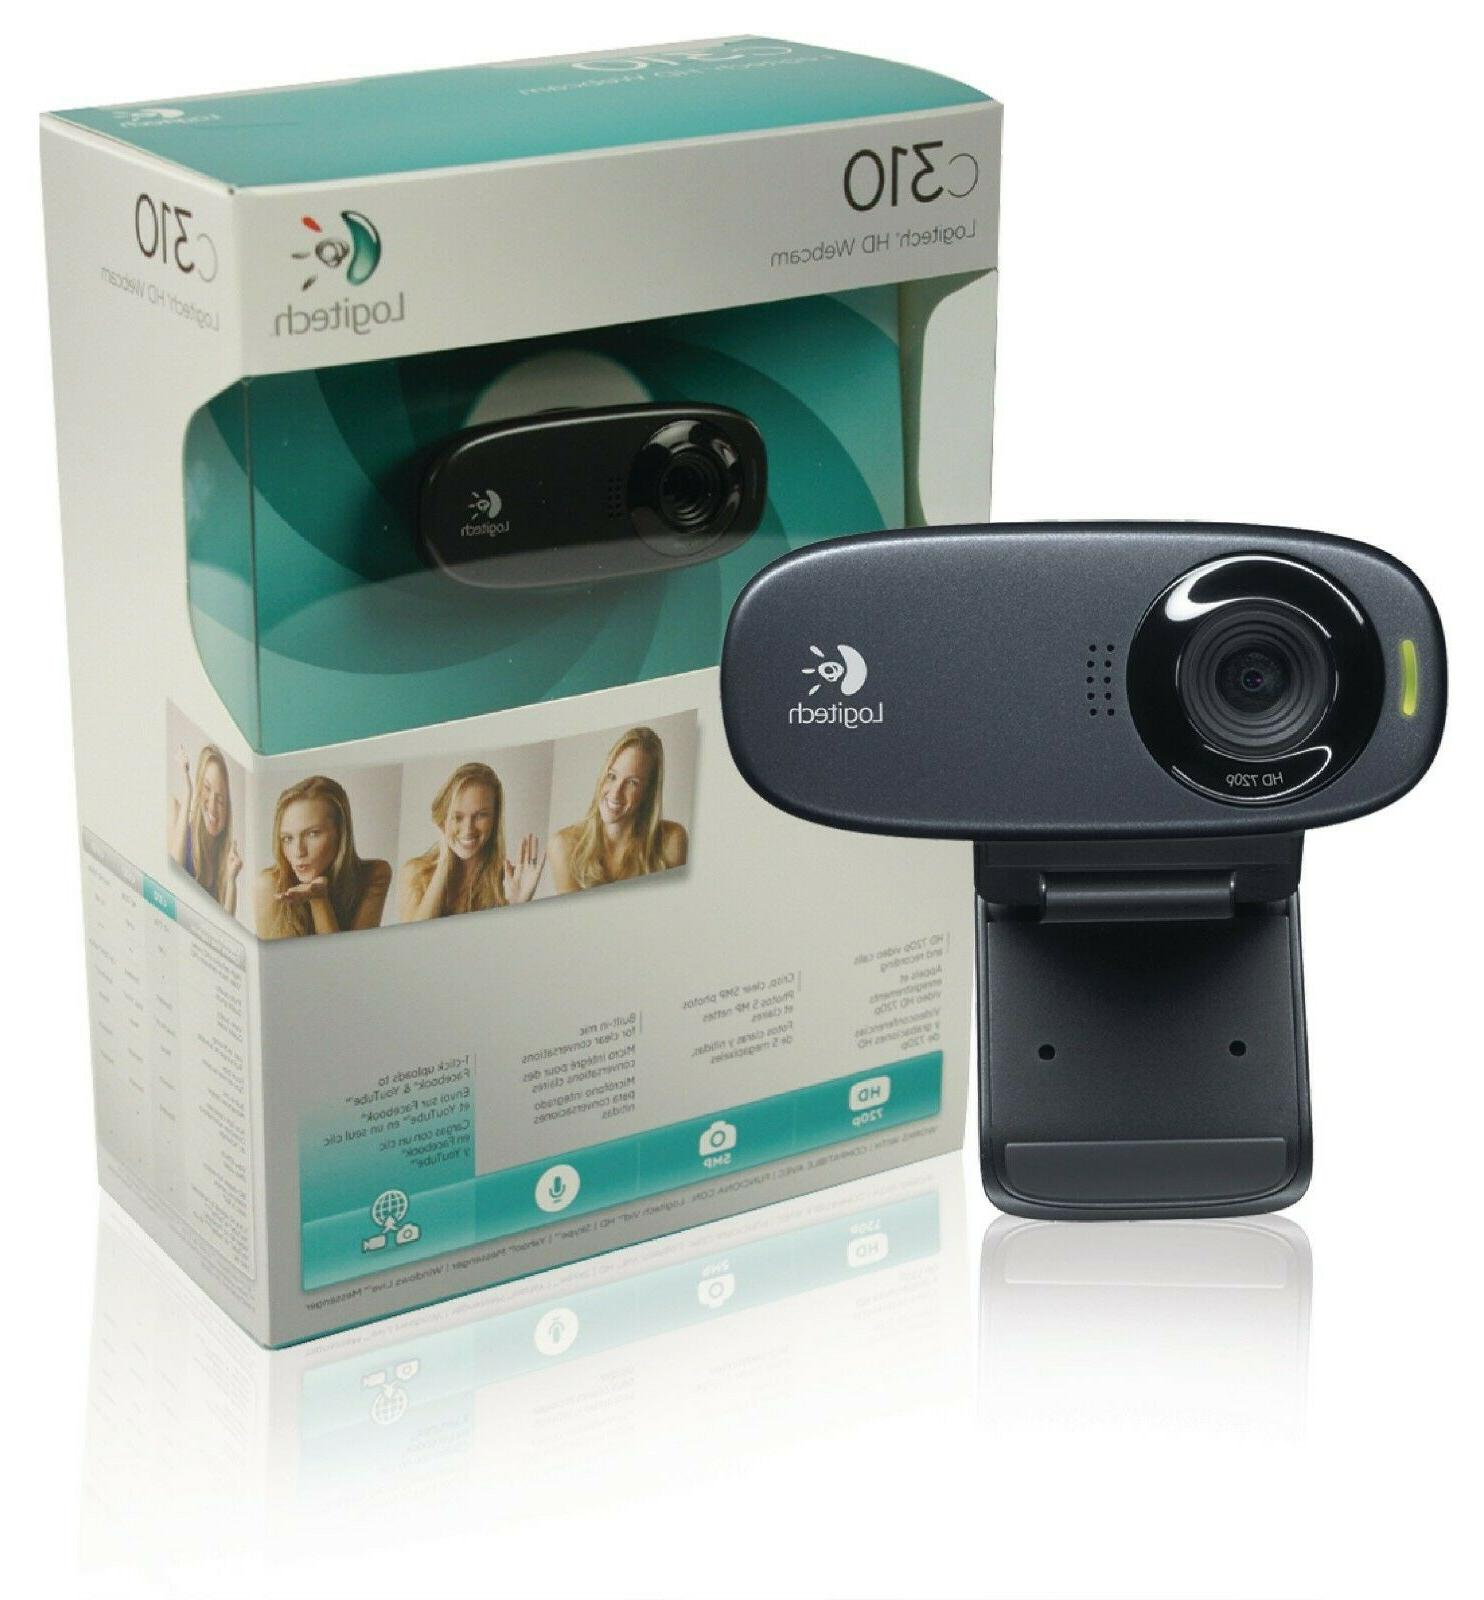 c310 webcam hd 720p 5 mp